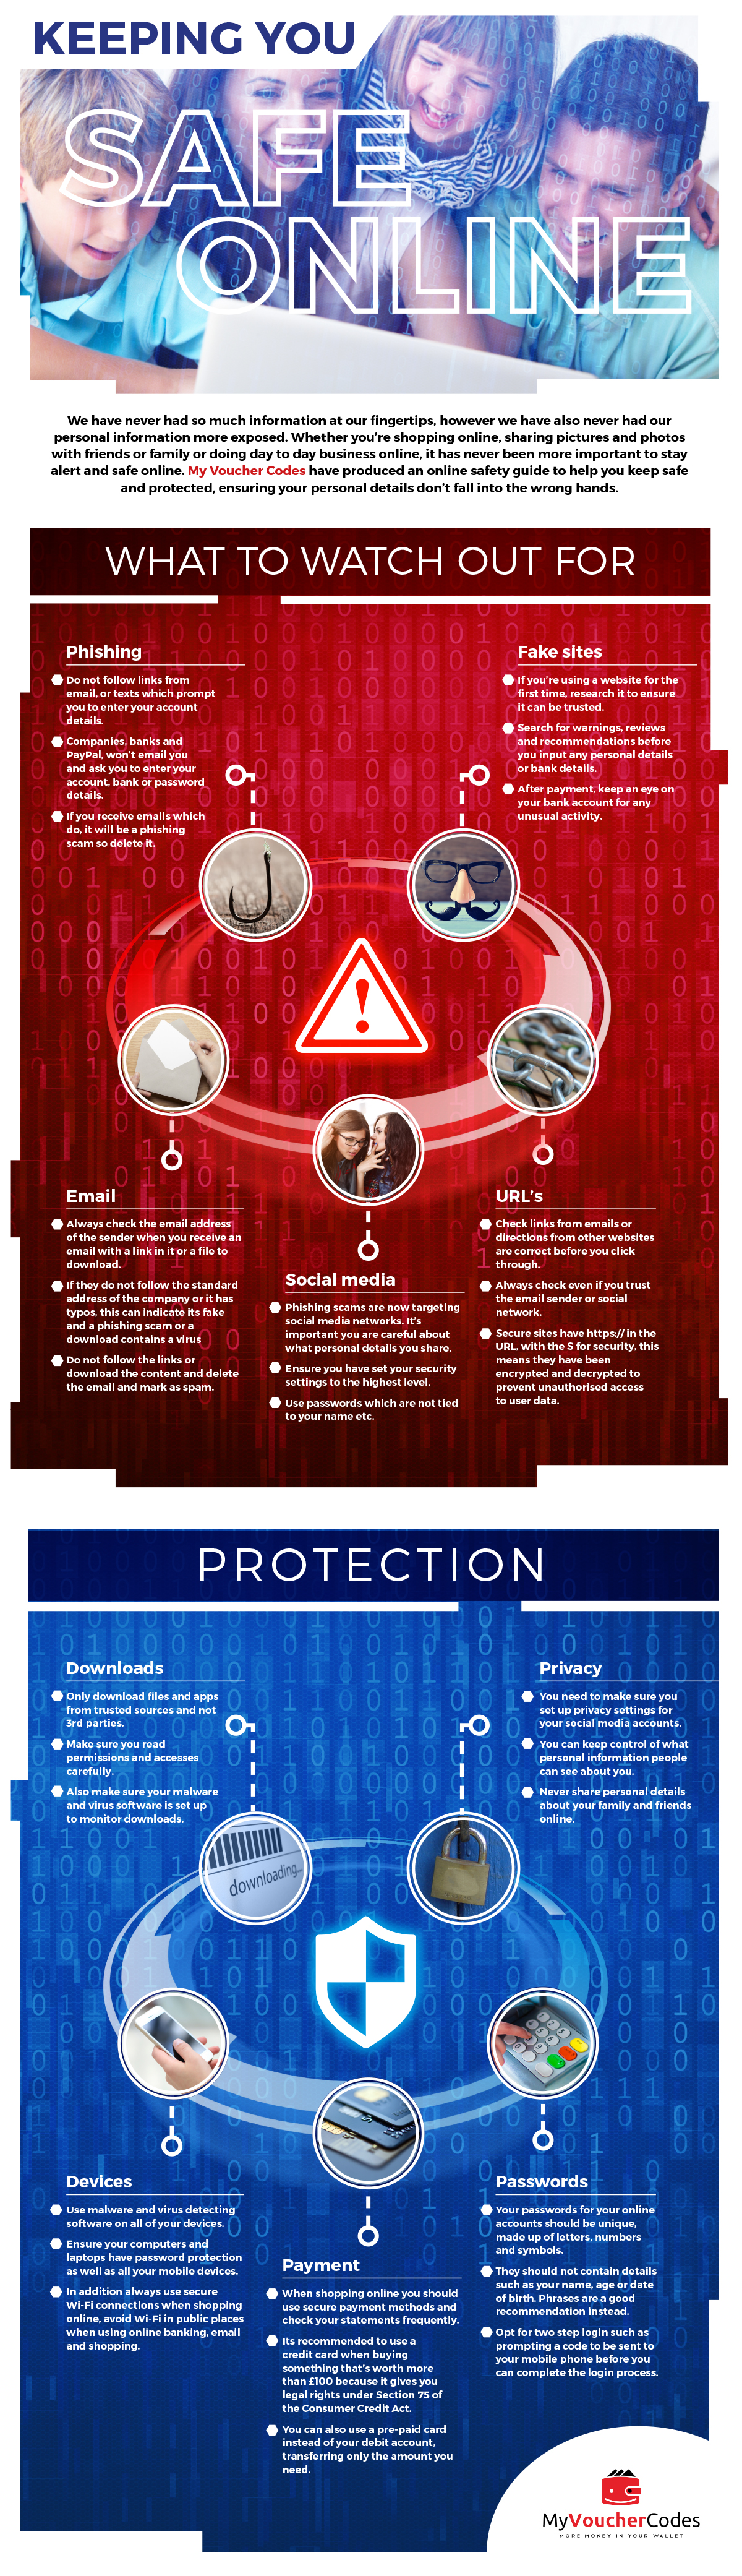 techconnections Internet Safety Infographic